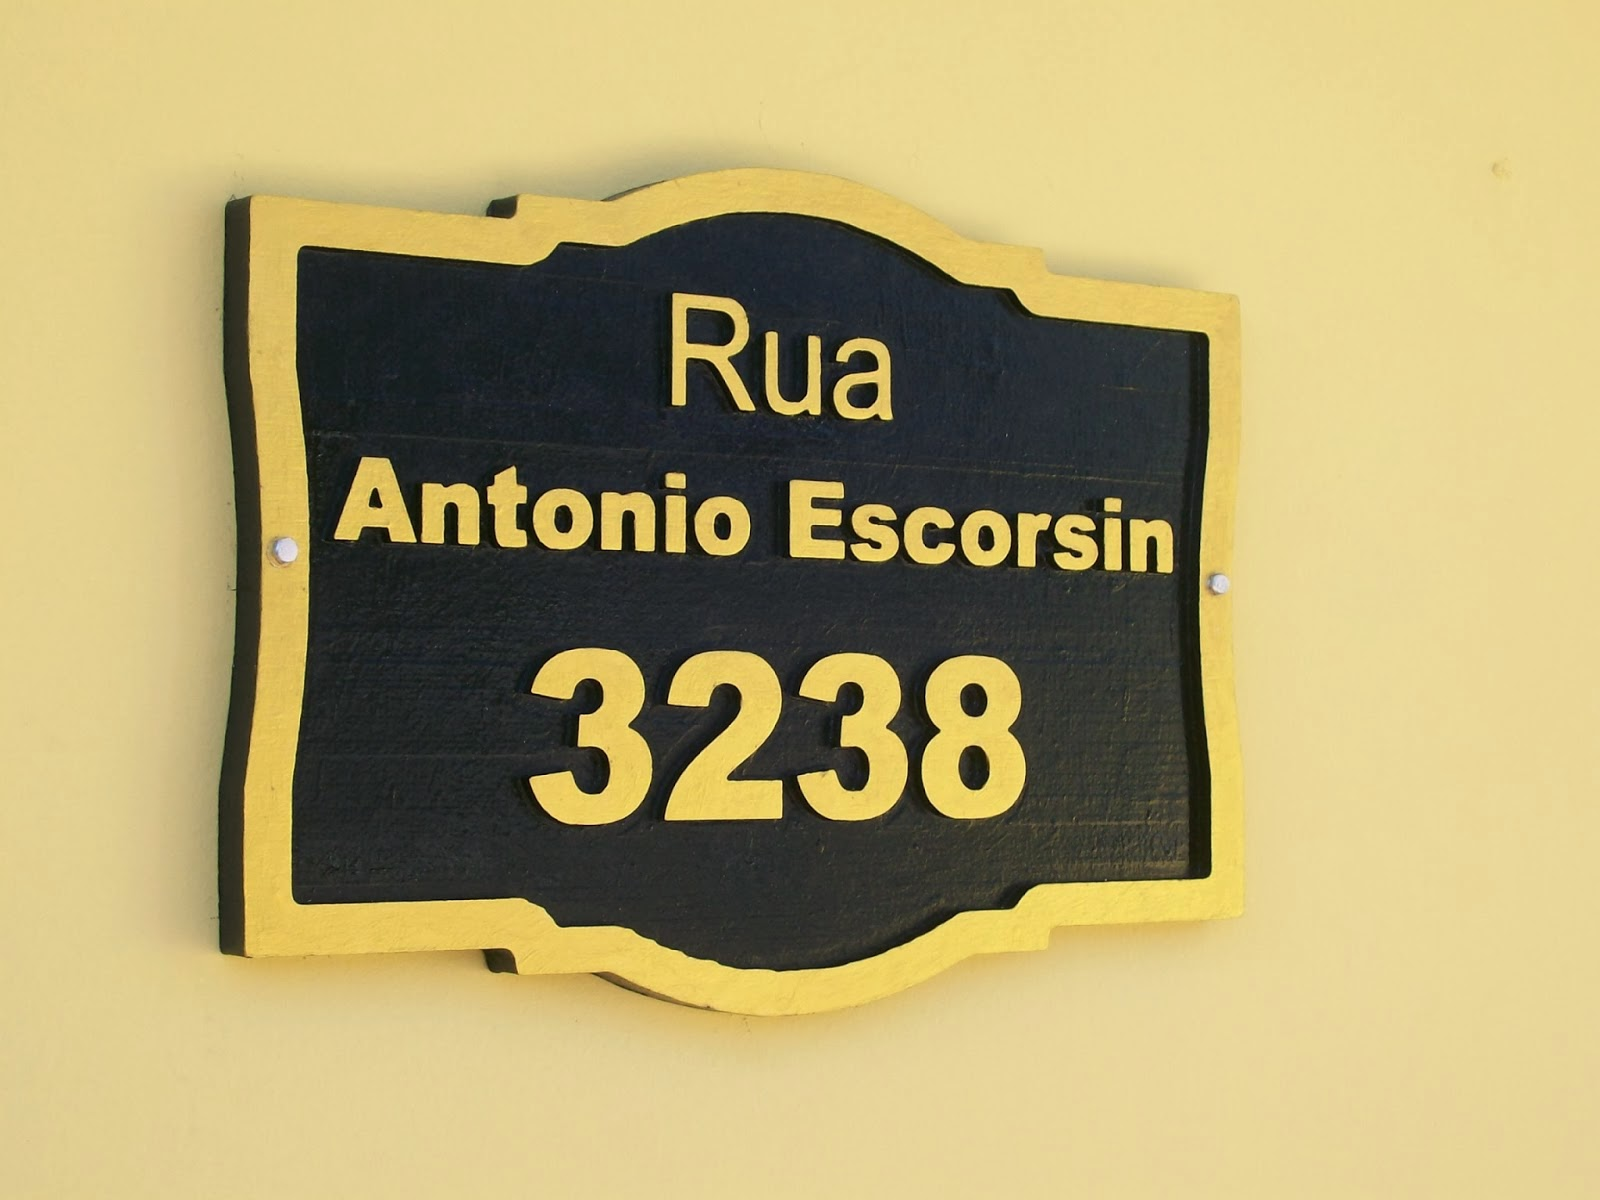 placas de condominios